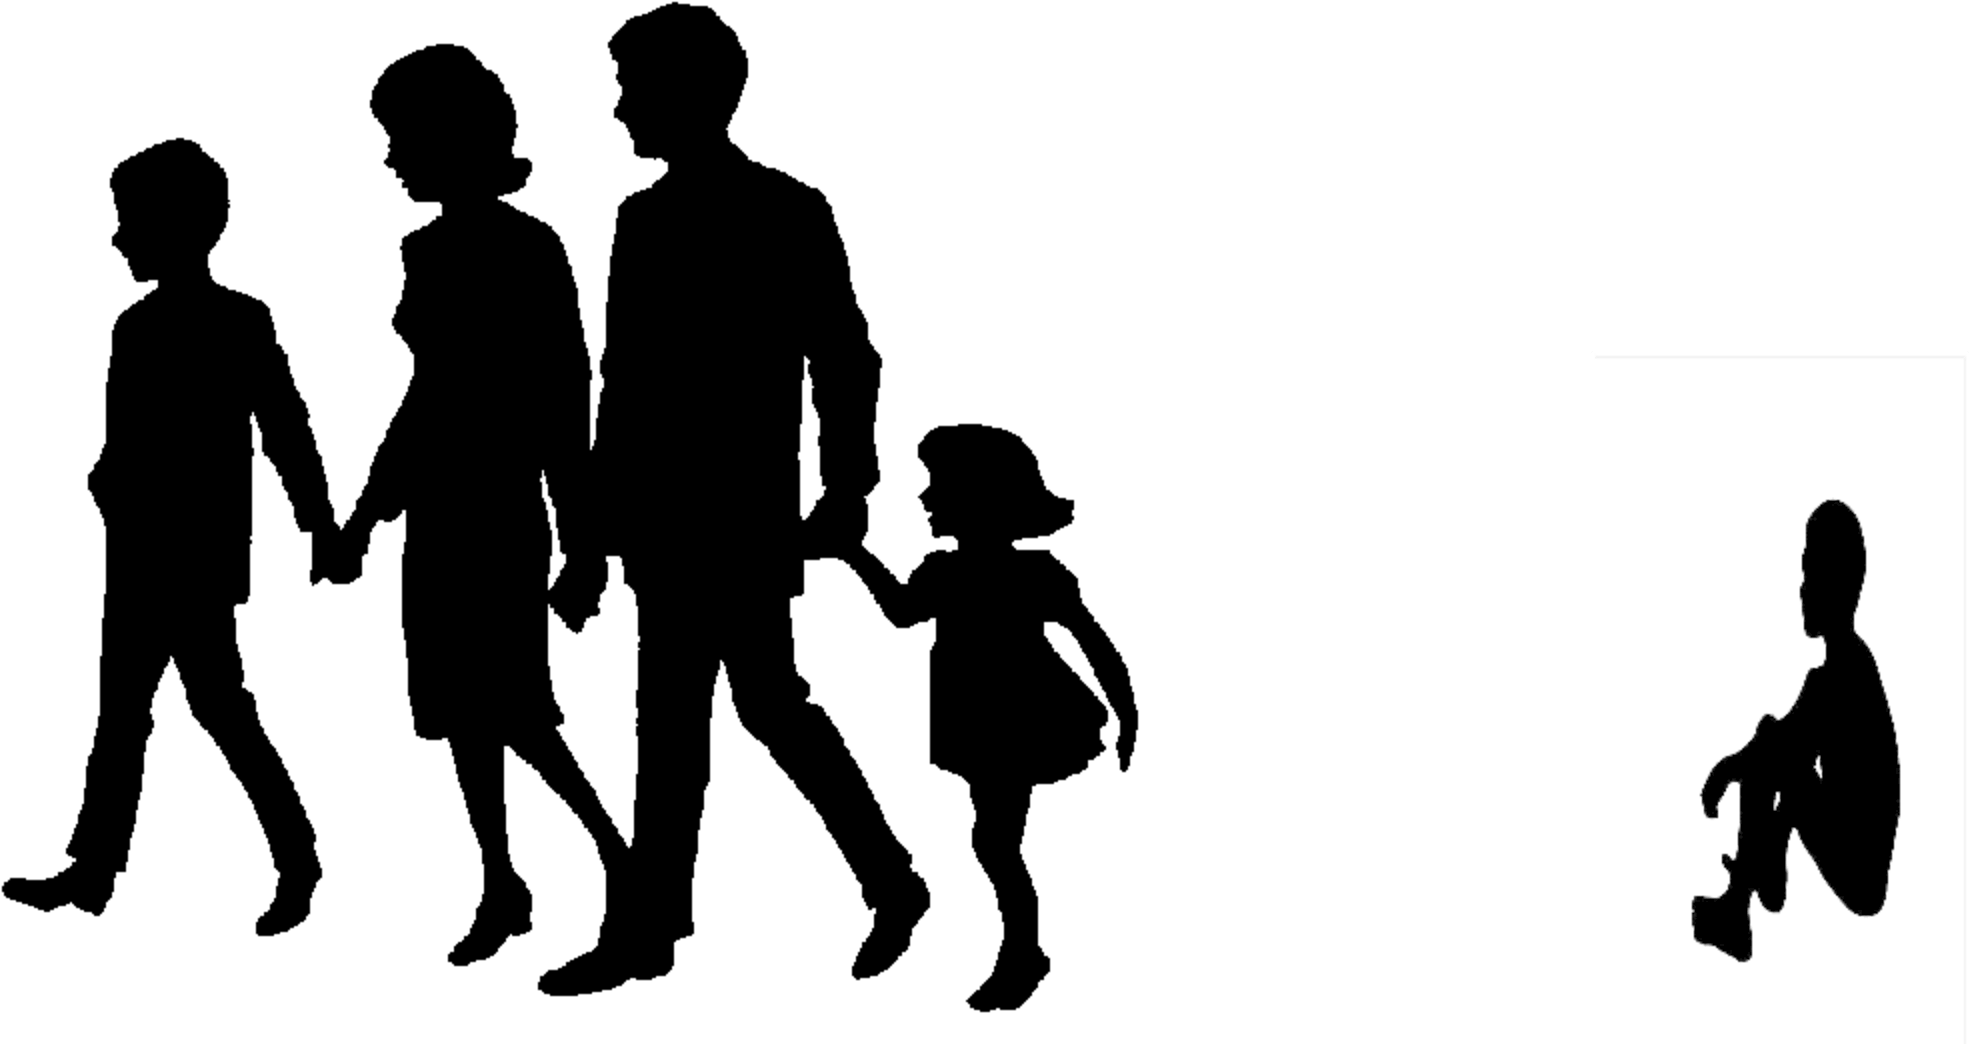 hight resolution of african american clip art family reunion image of african american family clipart do people migrate to the us png download